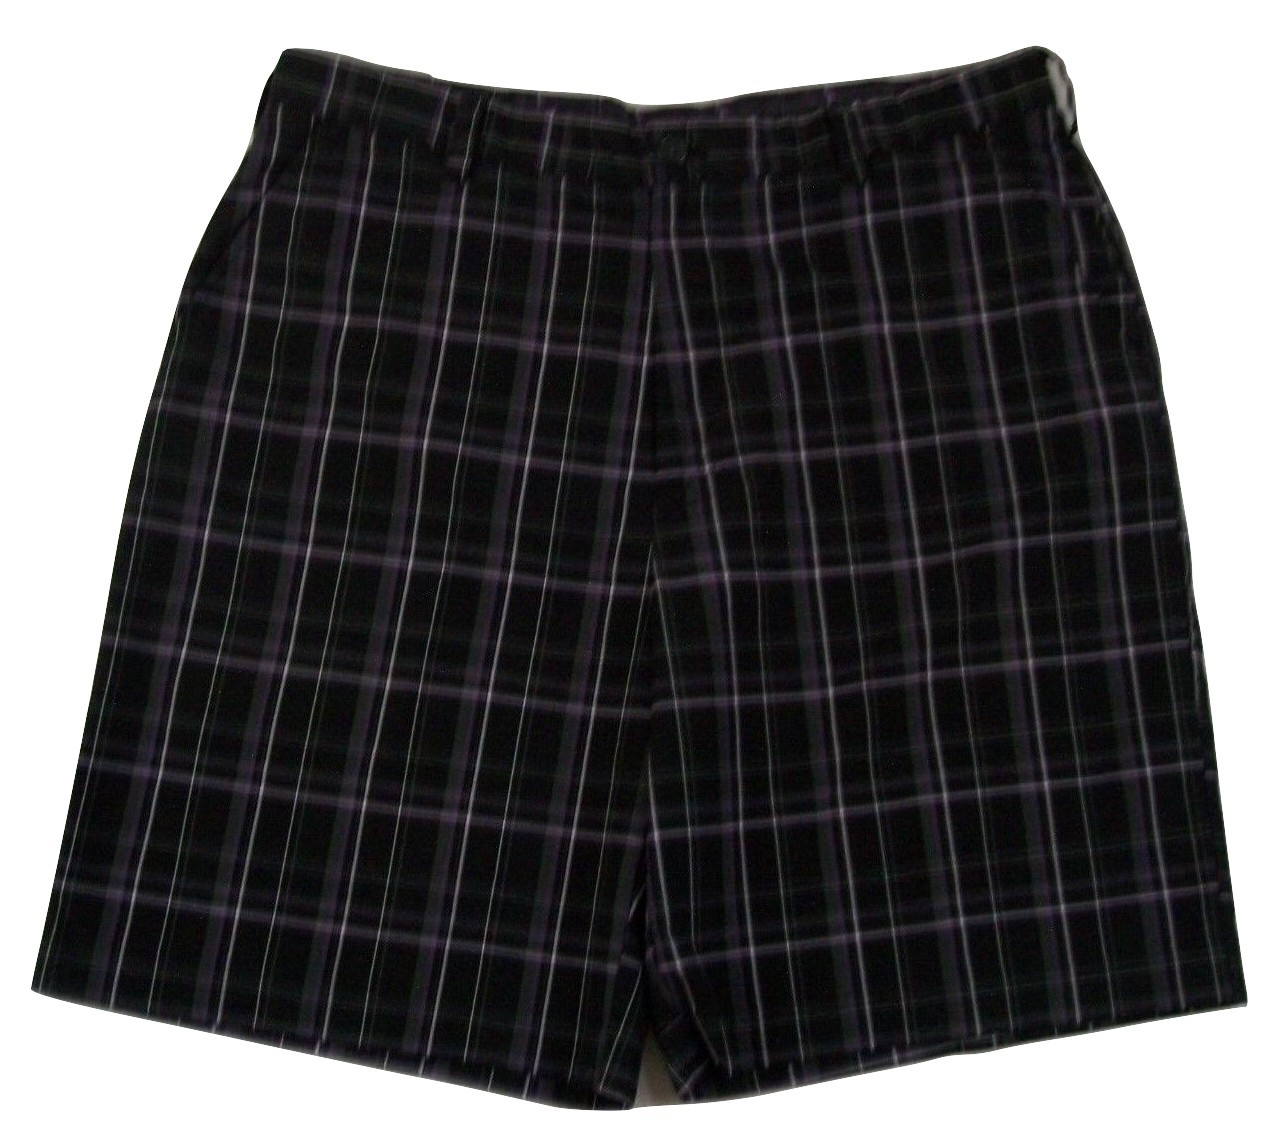 "IZOD Plaid Flat Front Golf Shorts Men's W36 Inseam 9"" 100% Polyester"